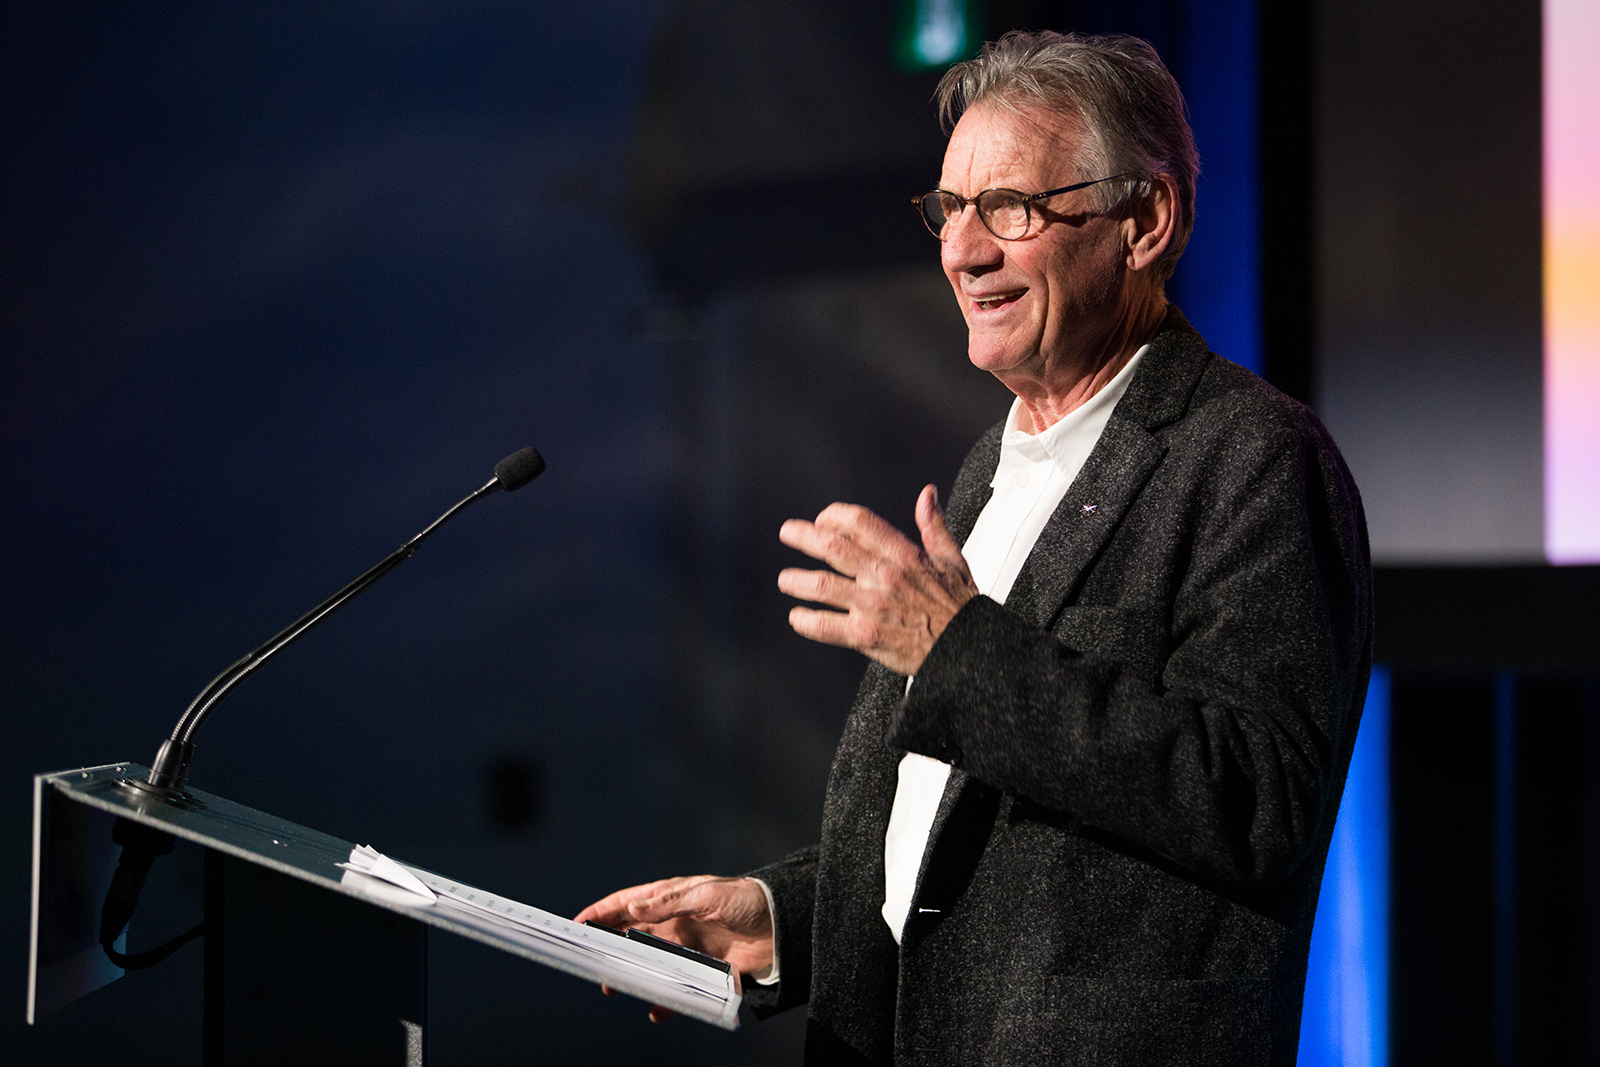 Michael Palin, of Monty Python fame, laughs while giving a talk at 50 Sussex Drive